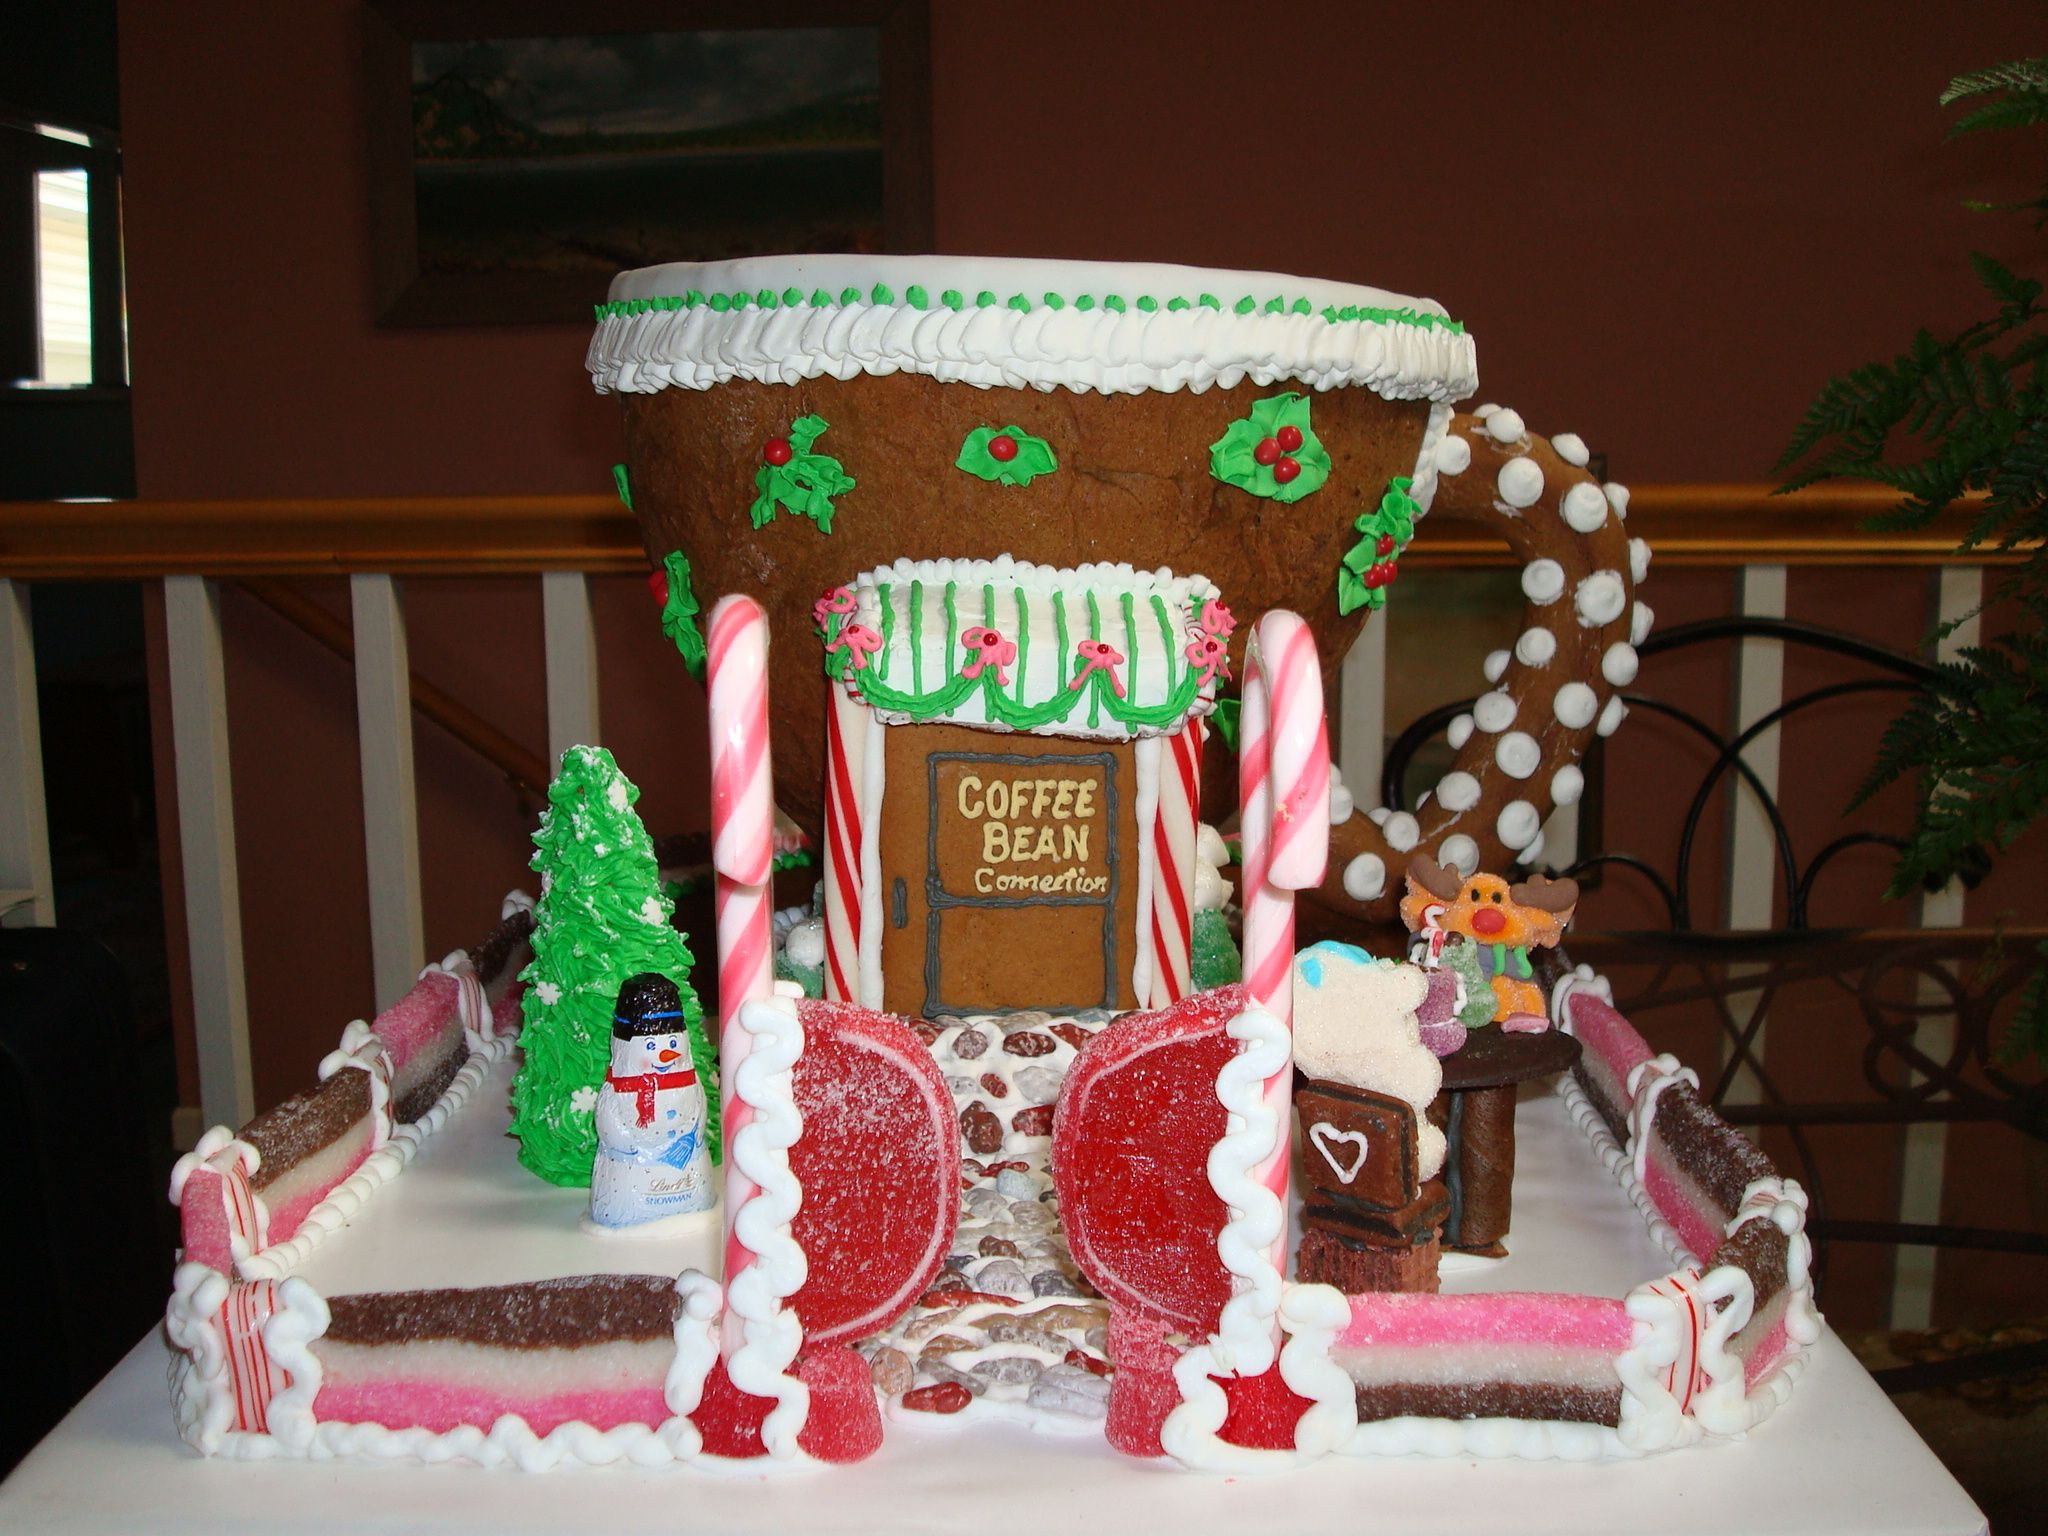 Coffee Bean Connection Christmas Gingerbread House Gingerbread House Designs Christmas Gingerbread